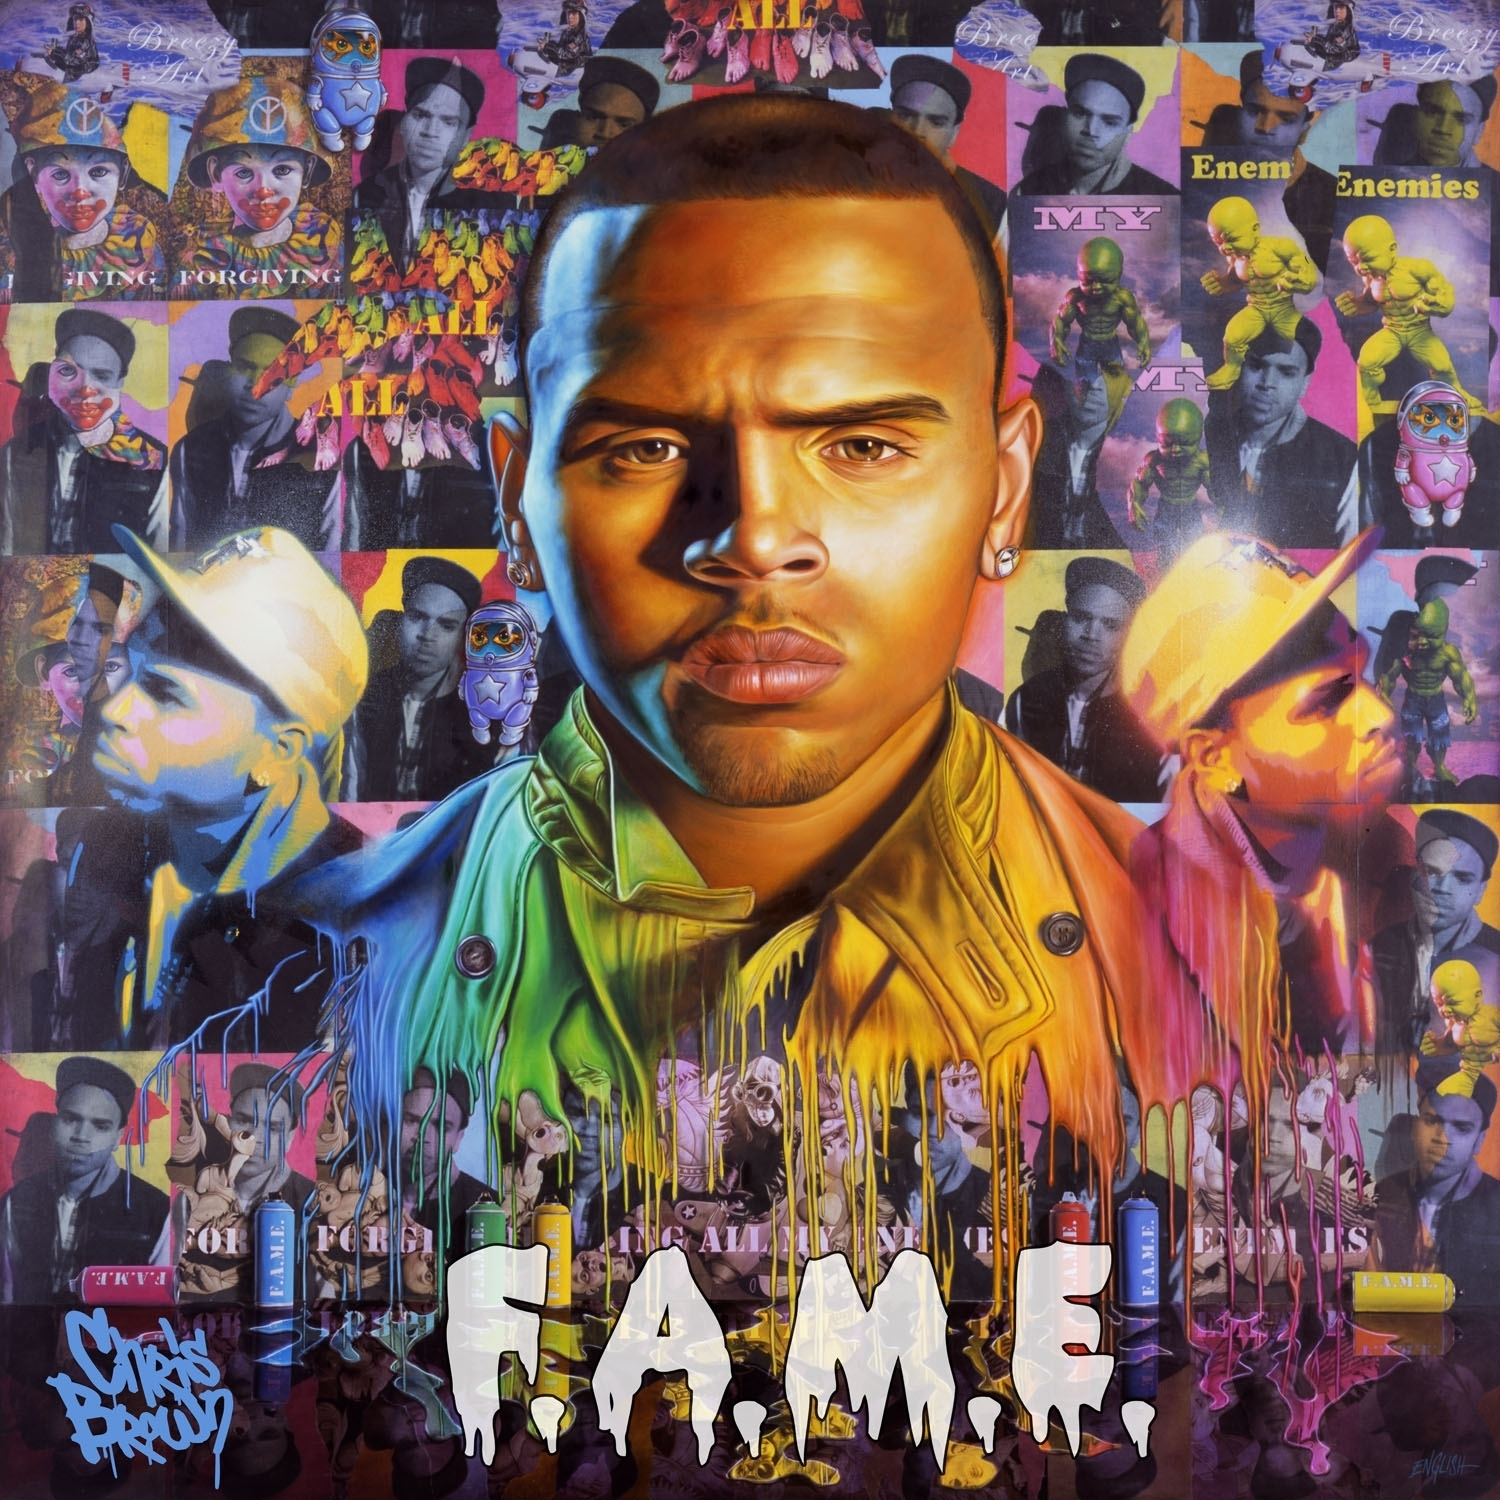 http://4.bp.blogspot.com/-ns_3pWbkgDQ/TbWUMTn7J0I/AAAAAAAAAEw/bg_PGzppMWI/s1600/Cover-for-Chris-Brown-s-F-A-M-E-album-chris-brown-19330390-1500-1500.jpg